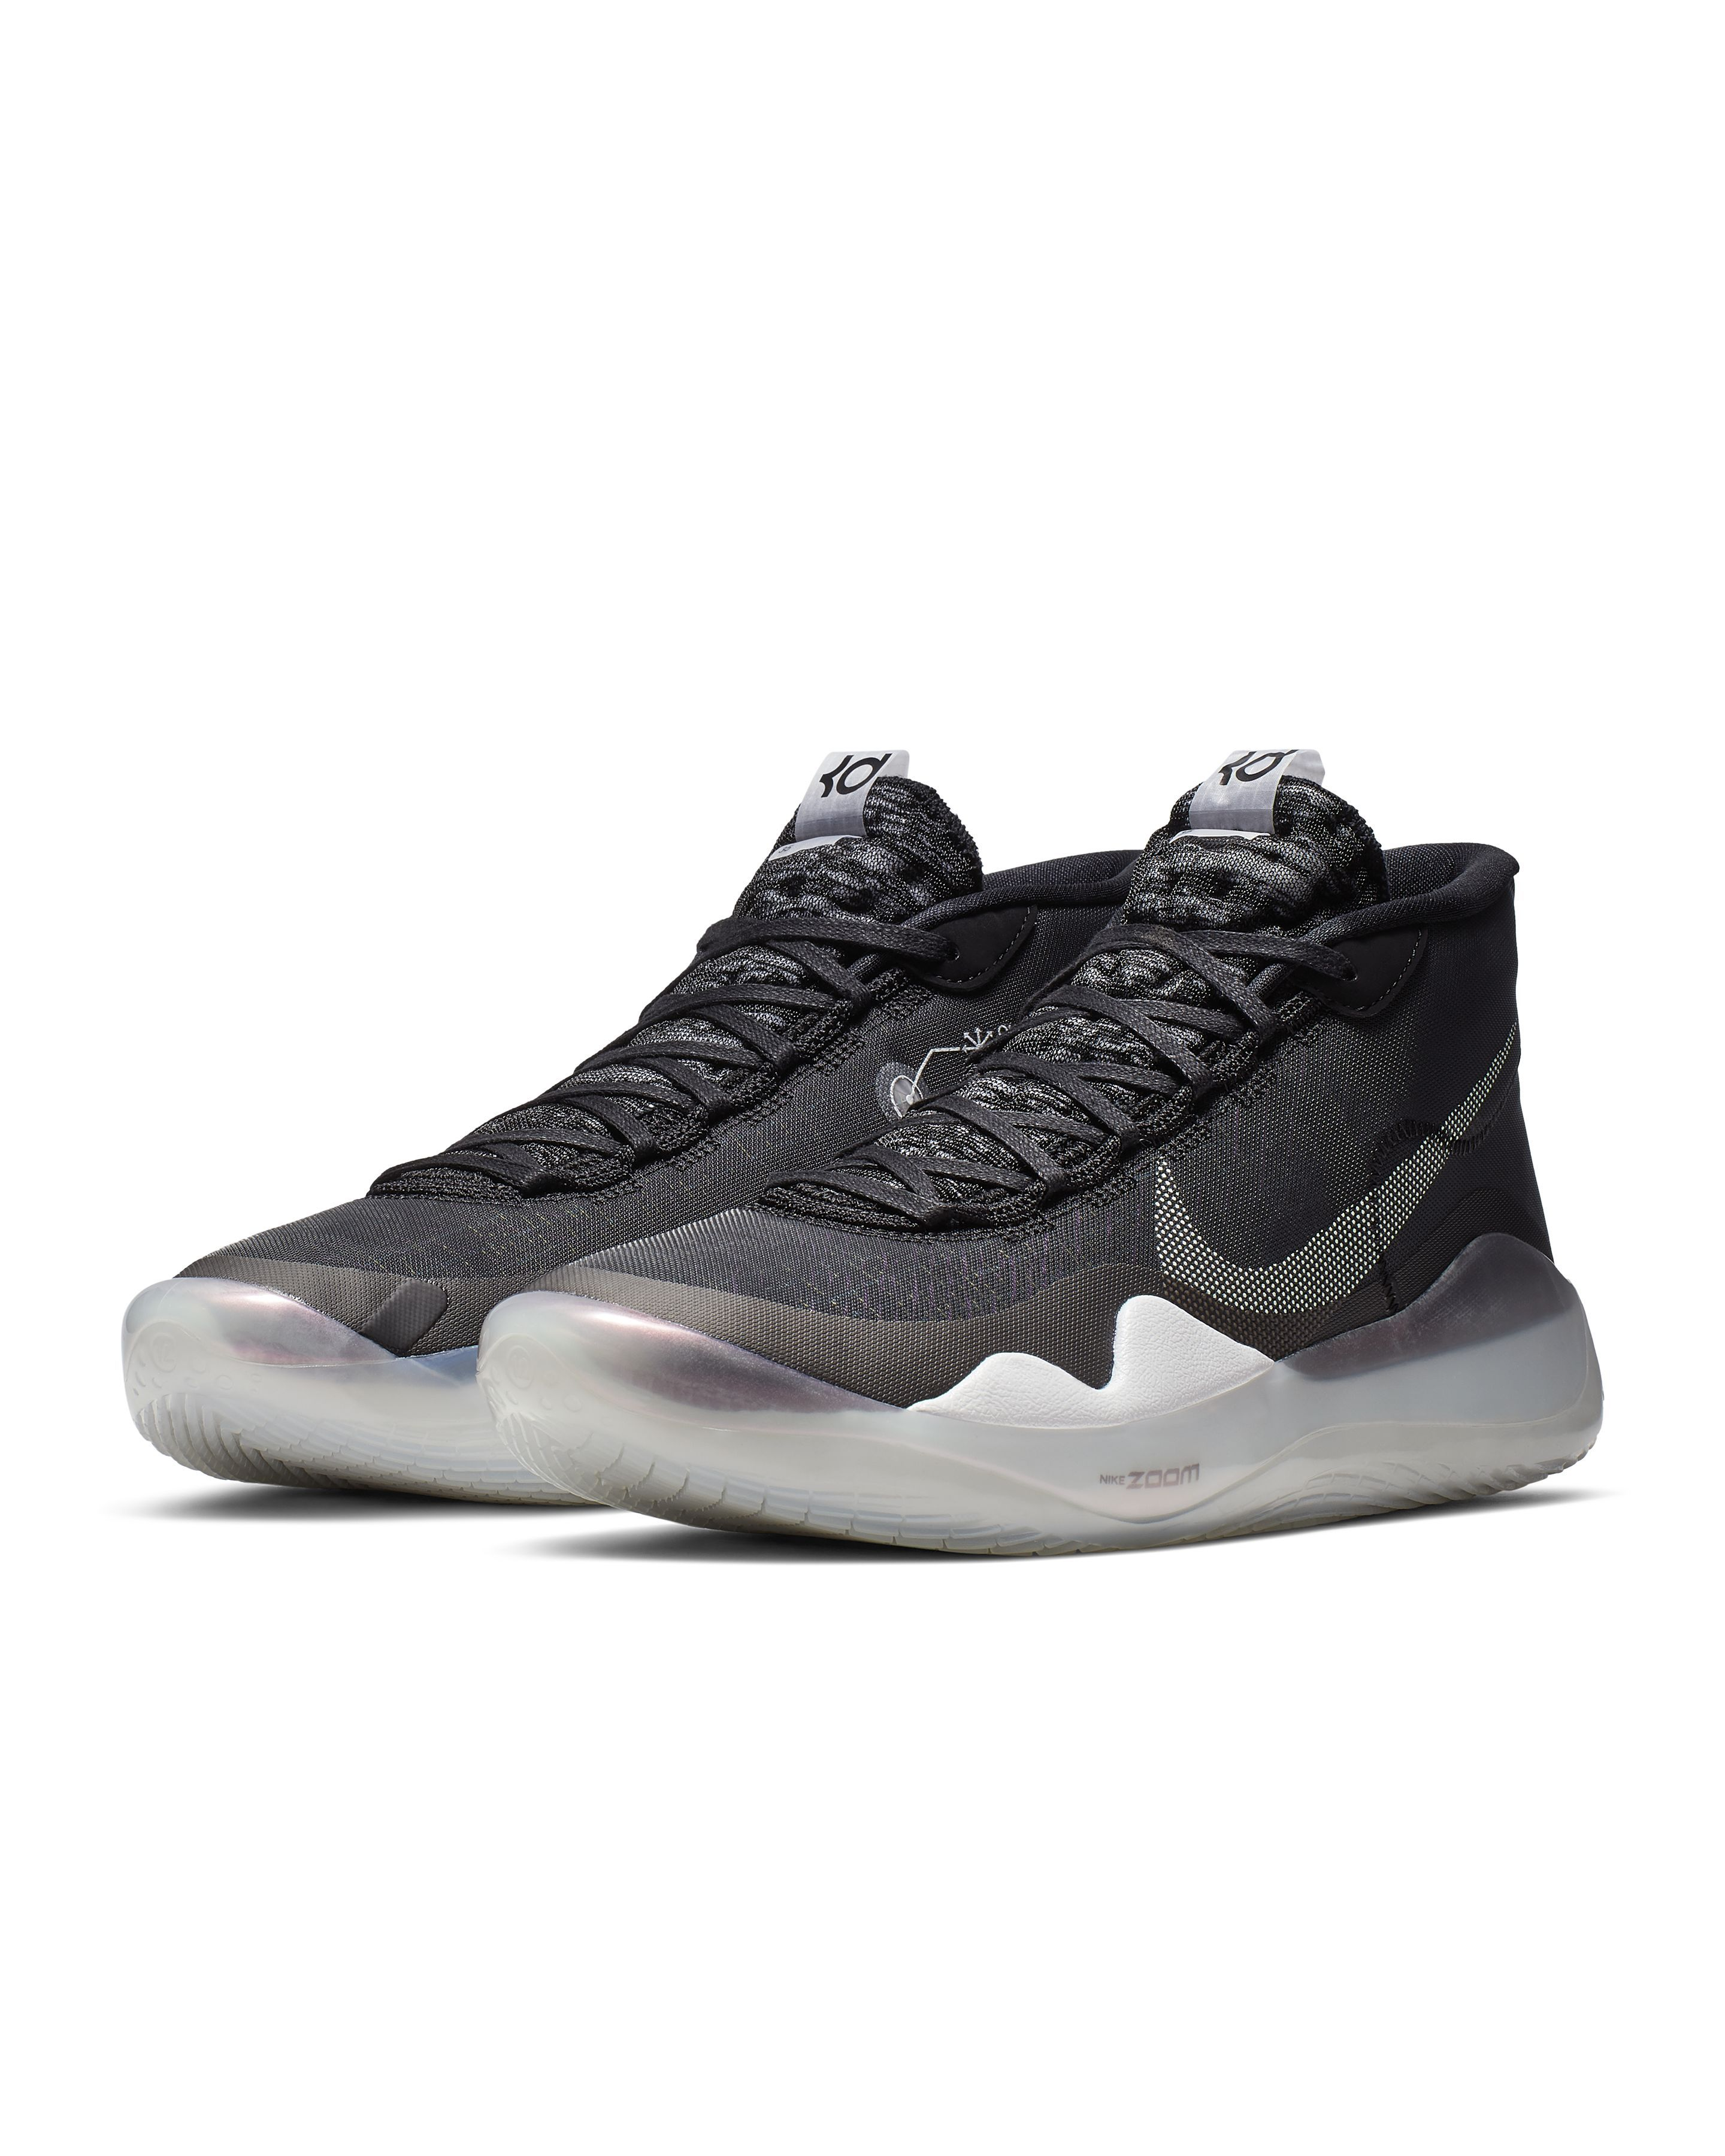 7f4a4d853c21 15 Best Pairs of Basketball Shoes for Men 2019